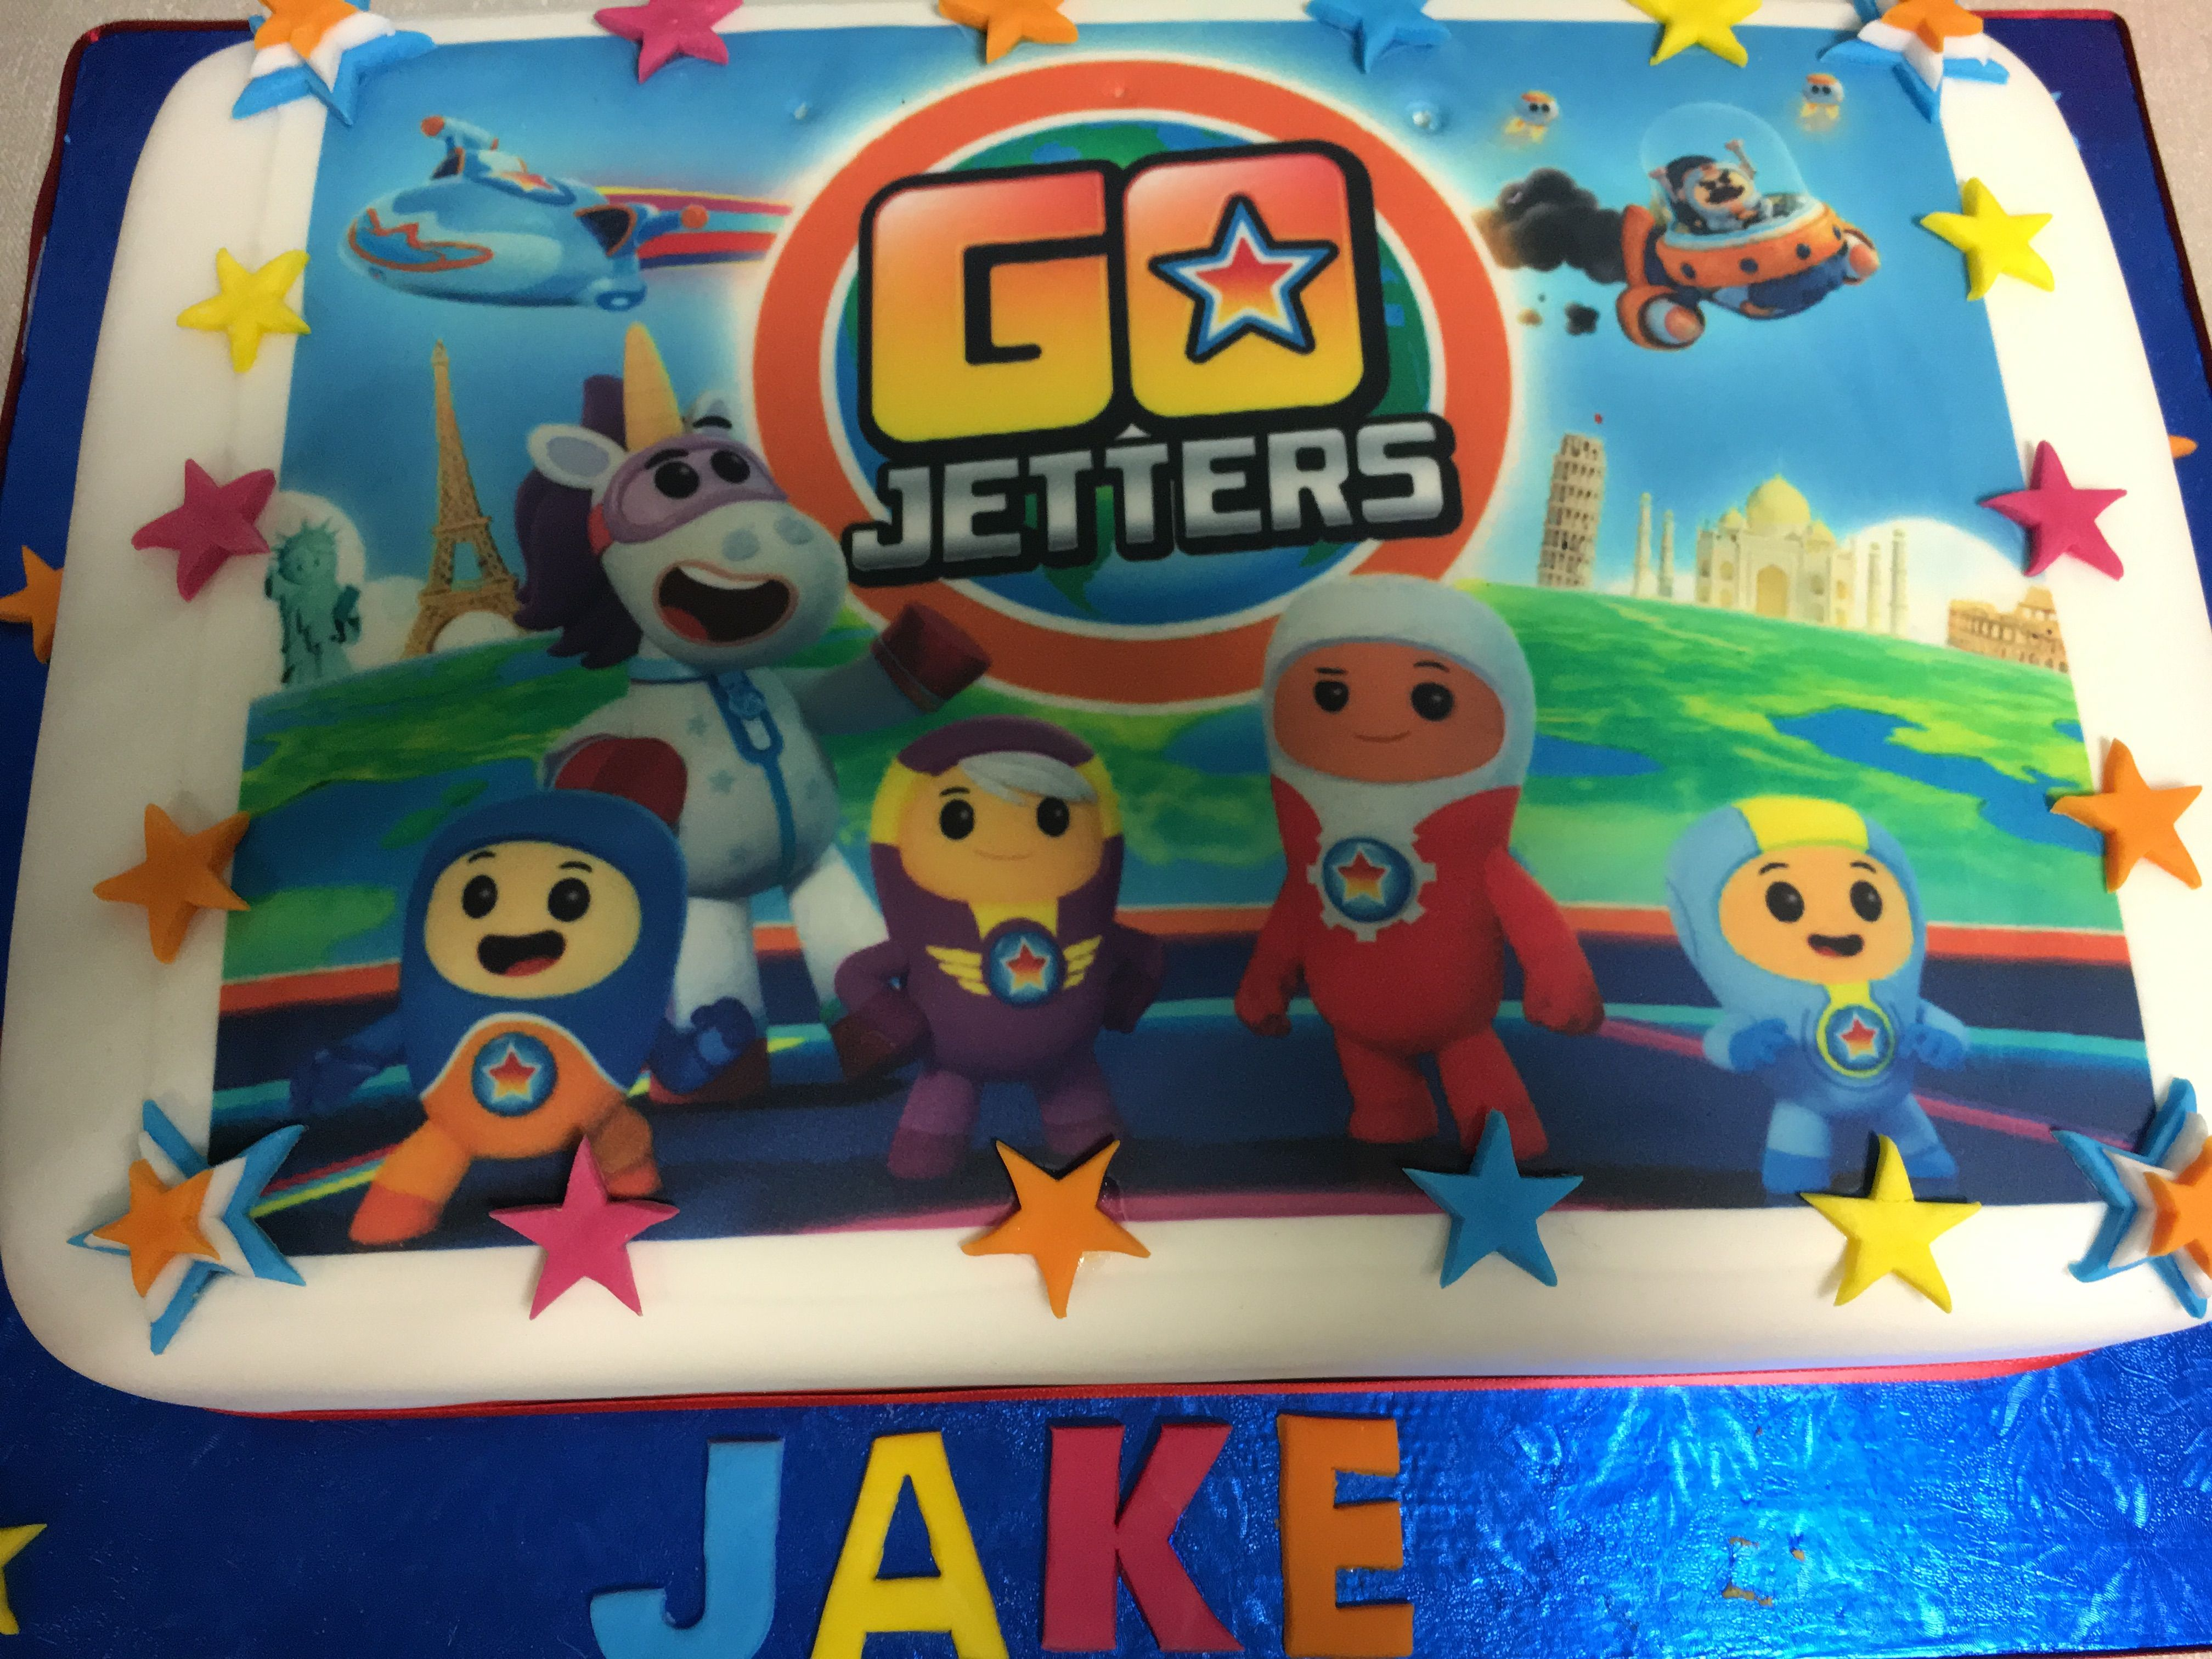 Jakes 3rd Birthday Cake birthdaycake GoJetters Cbeebies – Cbeebies Birthday Cards Youtube